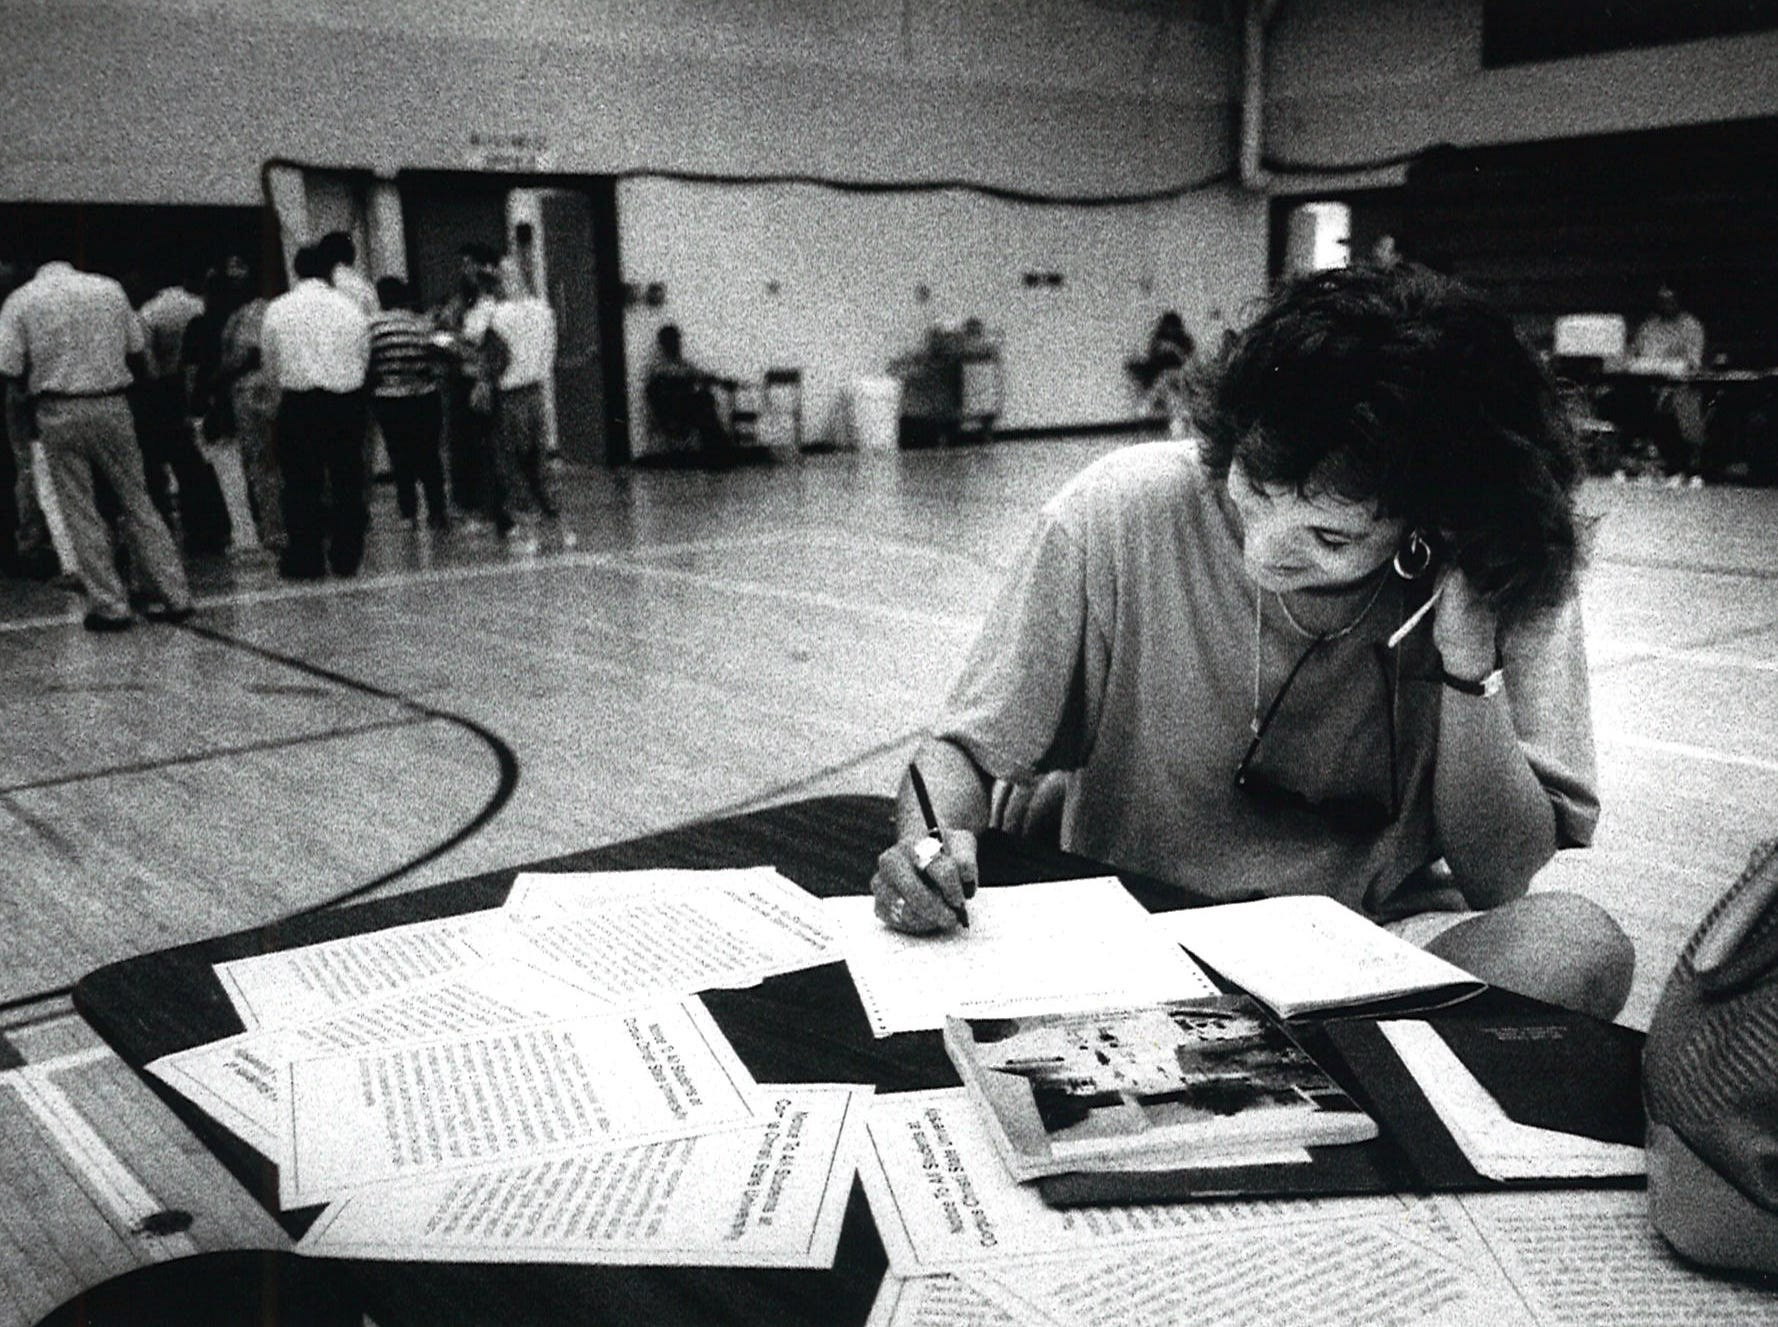 Belinda Flores of Orange Grove creates her class schedule while other students line up to pay their tuition and fees during summer school registration at Corpus Christi State University on May 31, 1990.